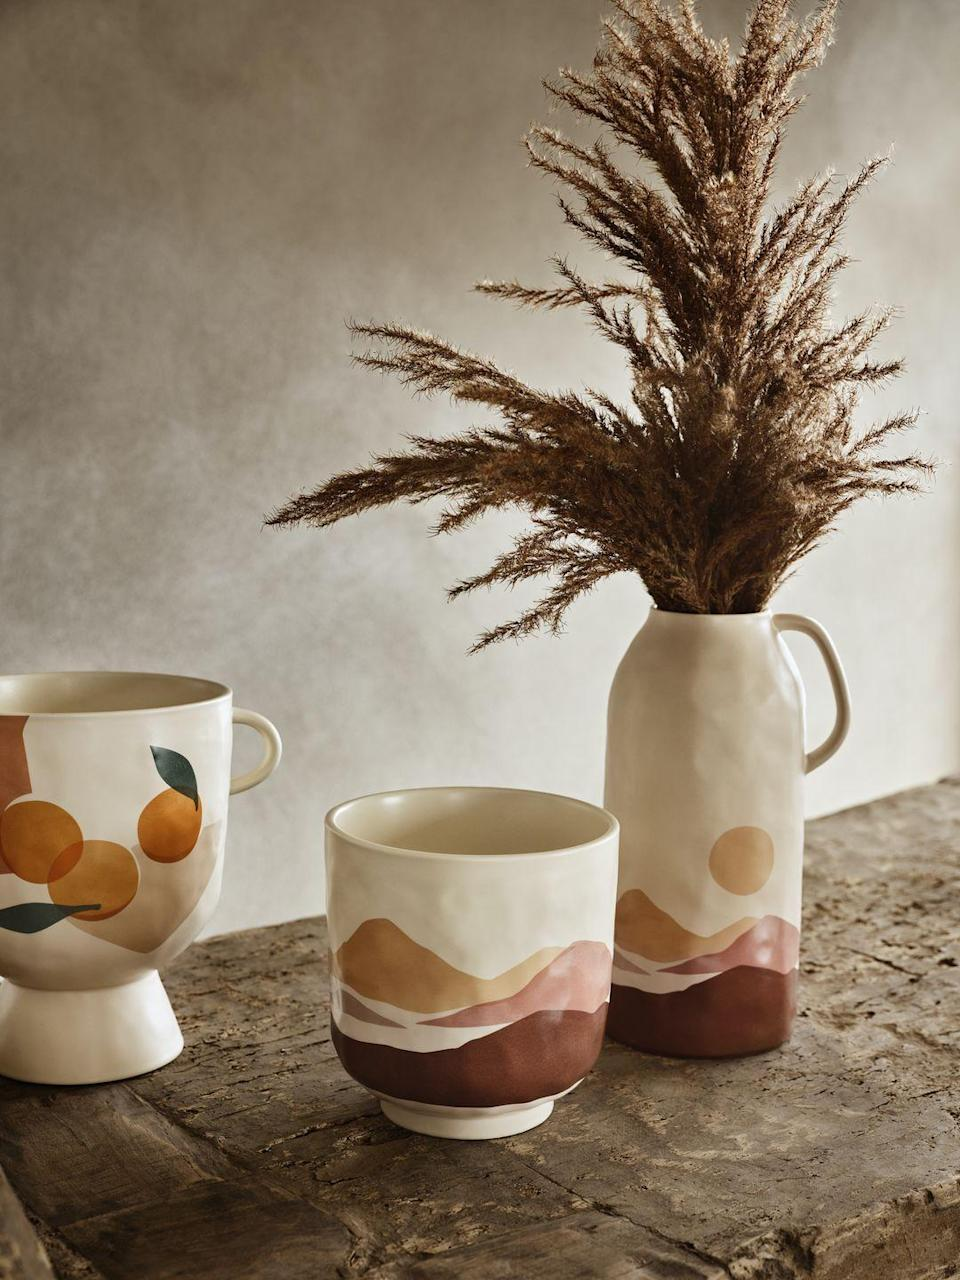 """<p>Display your favourite plant in this stunning stoneware pot, created by Célia Amroune and Aline Kpade from Sacrée Frangine in their Paris studio. Right up our street, it features colours inspired by Mediterranean shores and has a timeless matte finish. </p><p><a class=""""link rapid-noclick-resp"""" href=""""https://www2.hm.com/en_gb/productpage.1009577001.html"""" rel=""""nofollow noopener"""" target=""""_blank"""" data-ylk=""""slk:BUY NOW"""">BUY NOW</a></p>"""